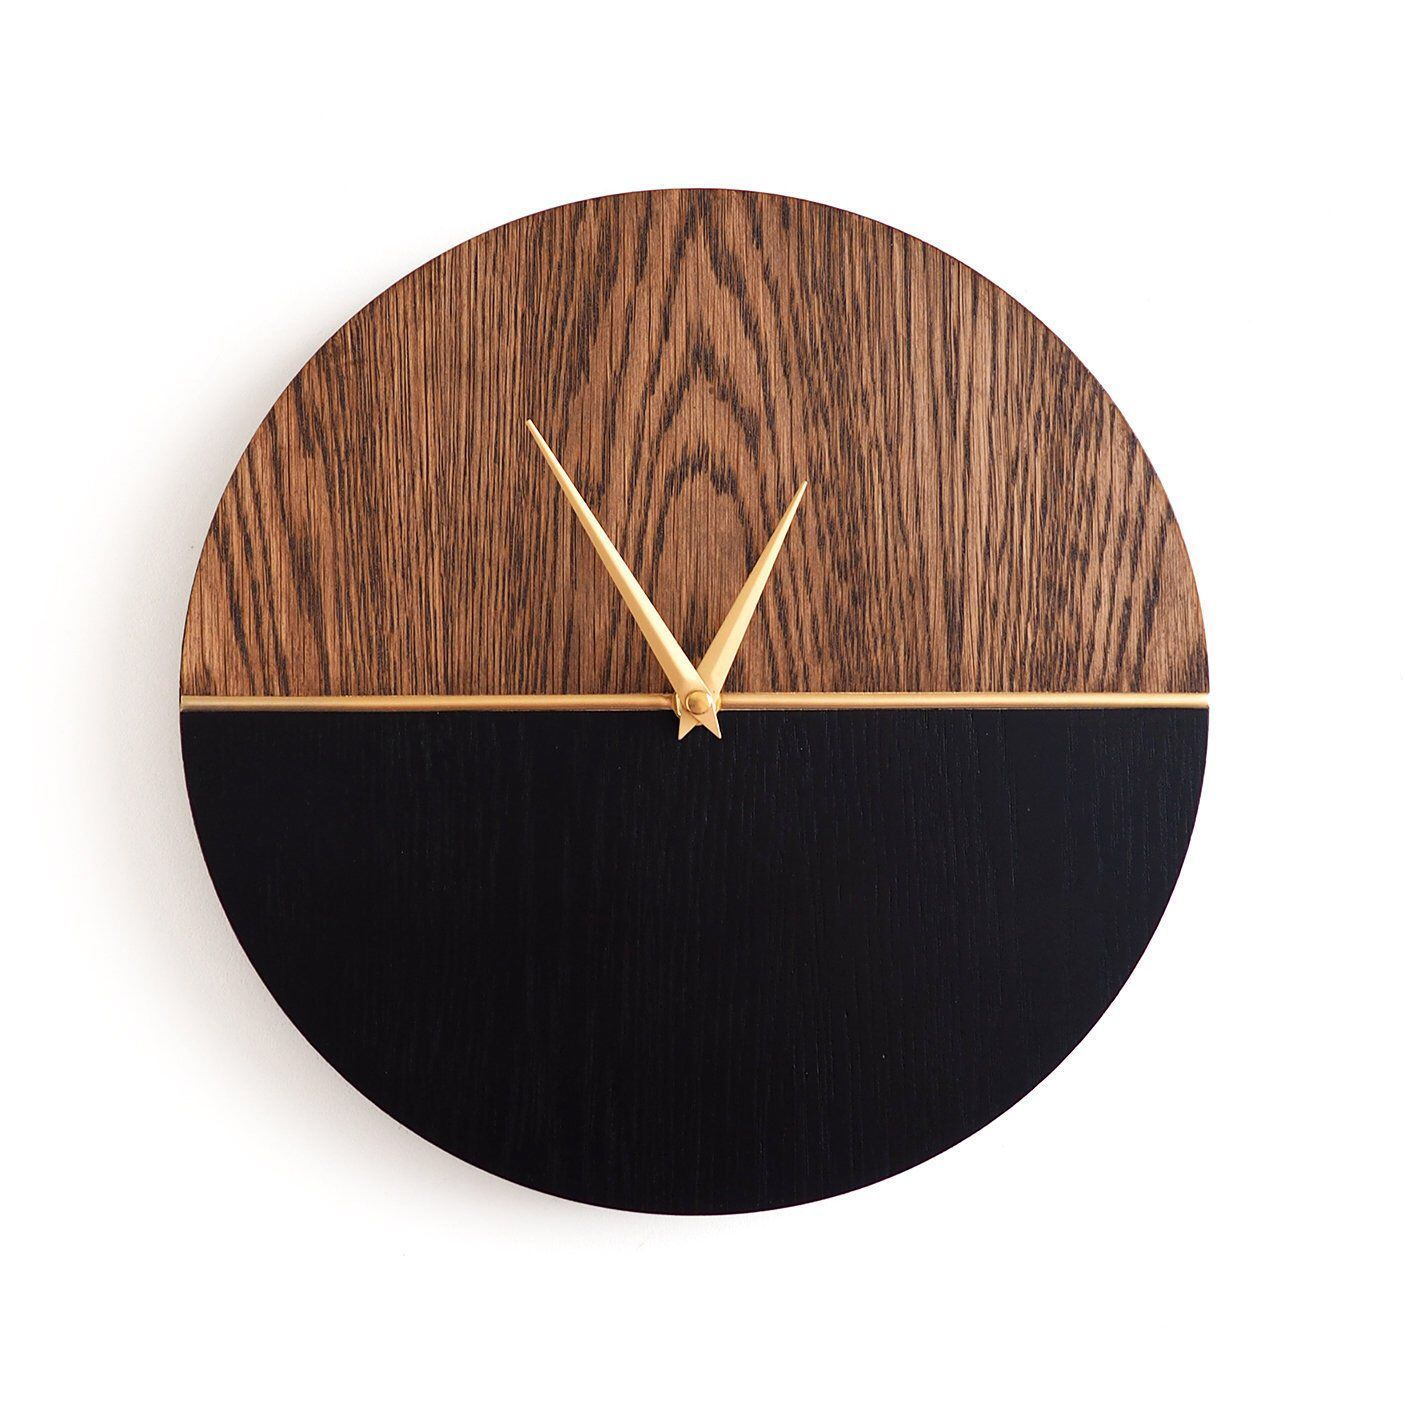 Pin By Inspiration Bathroom Decoratio On Doplnky In 2020 Diy Clock Wall Wood Clocks Wood Wall Clock